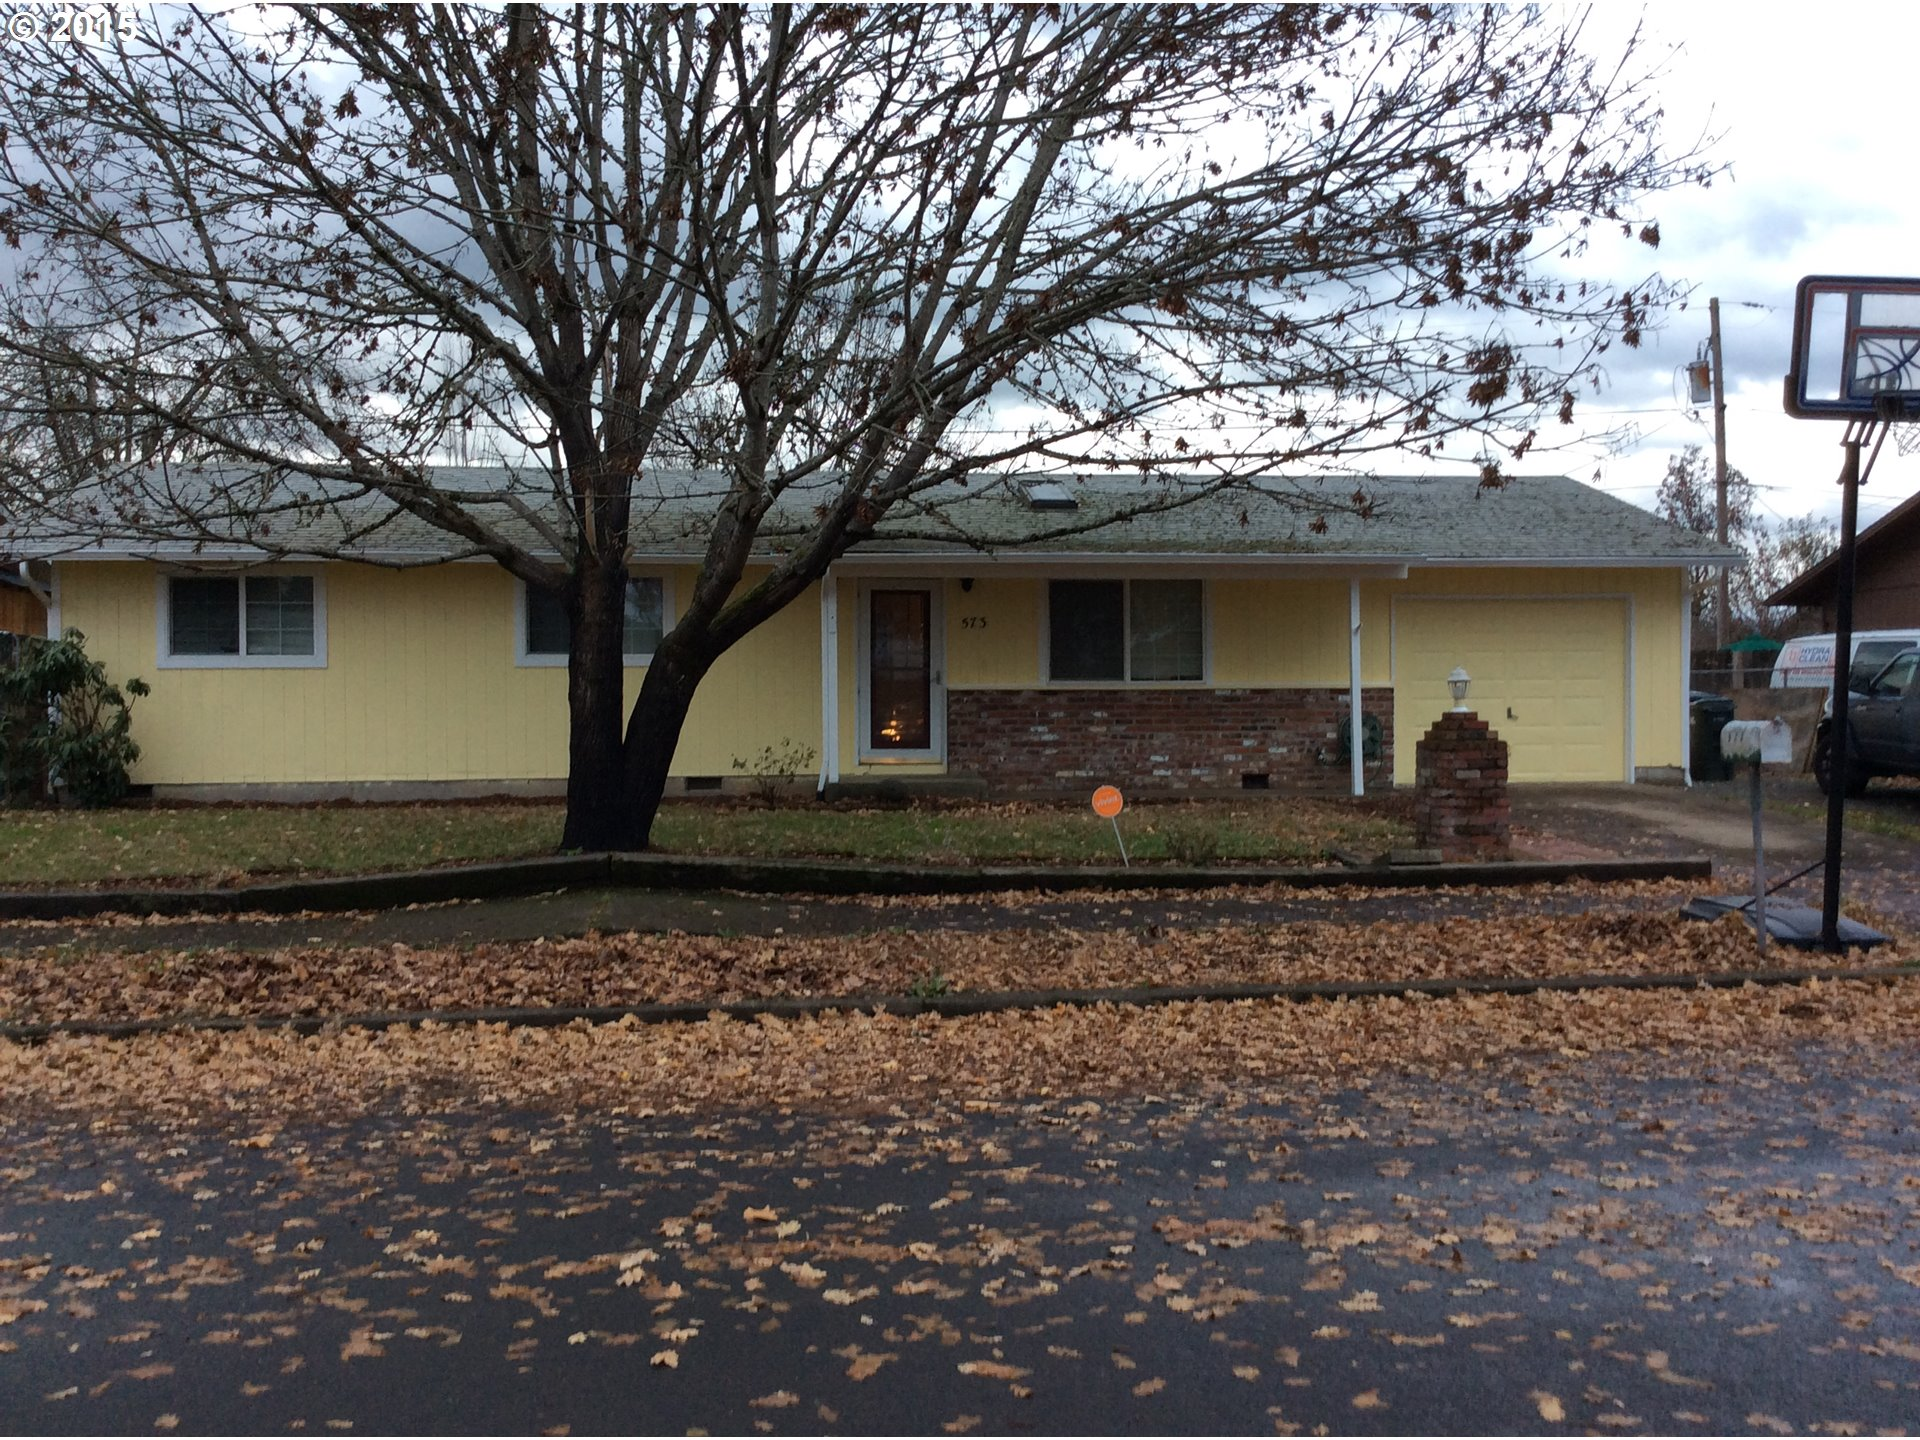 573 S 40th St, Springfield, OR